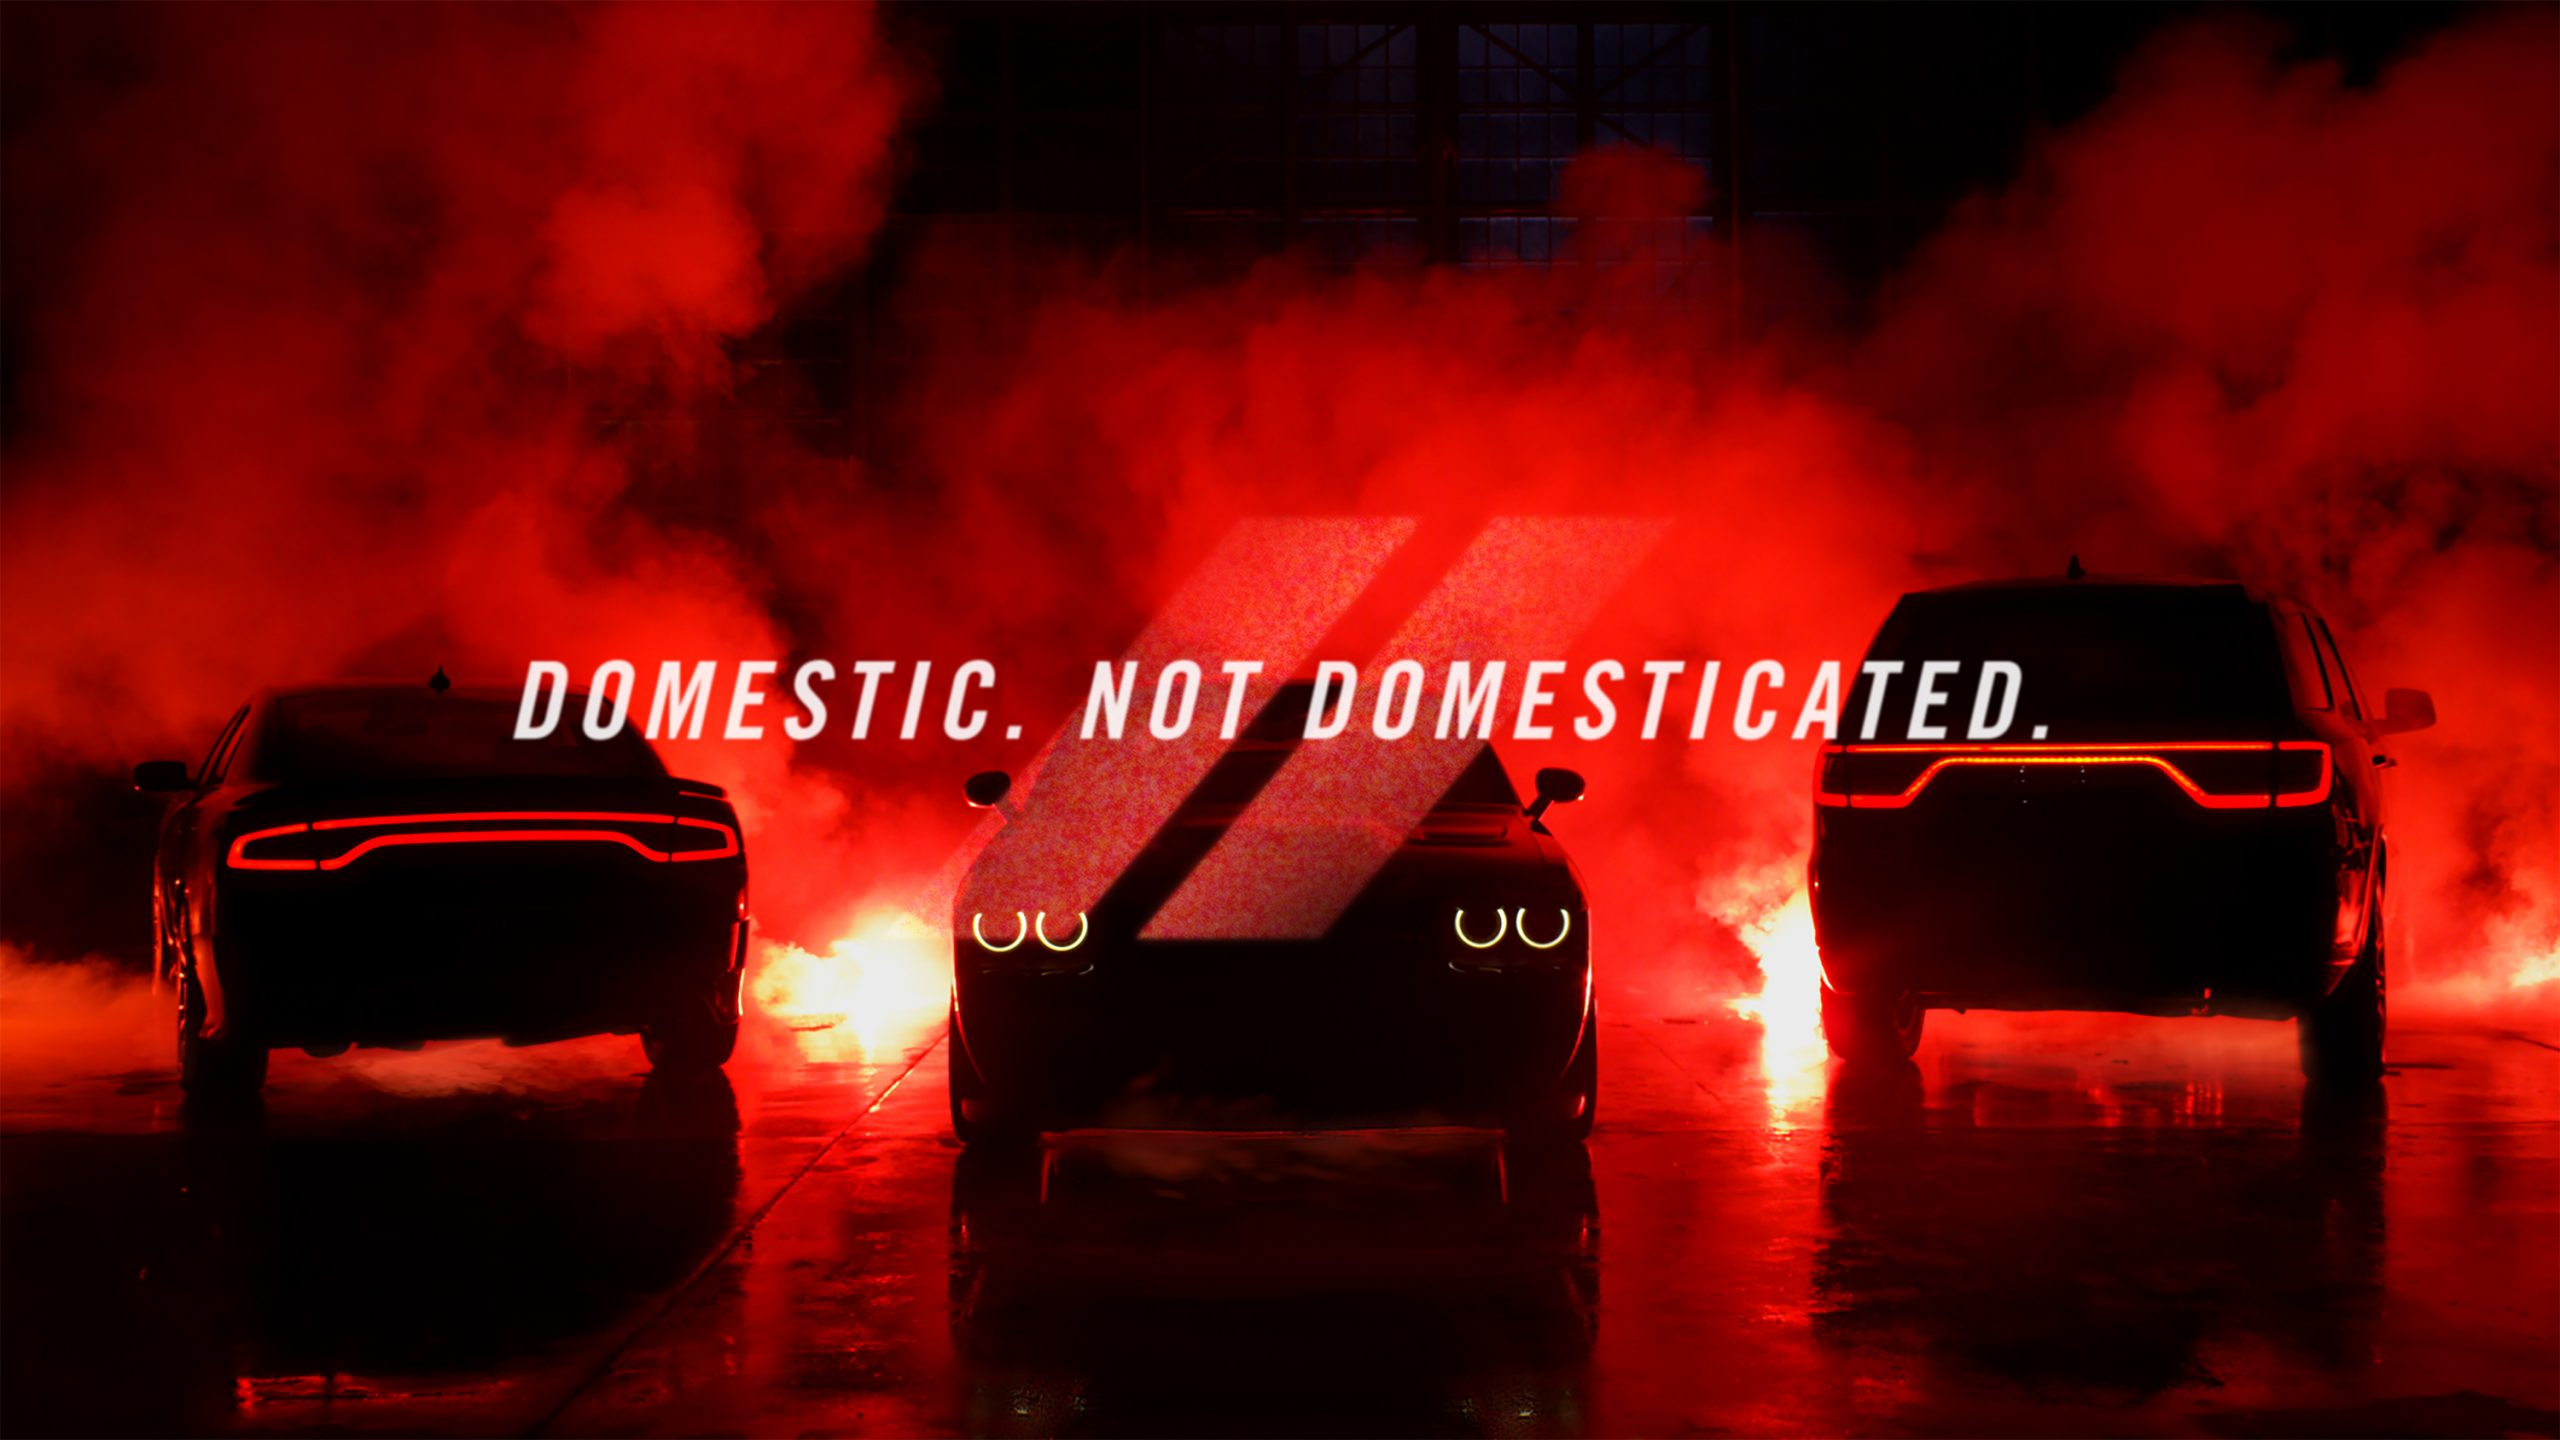 Dodge & SRT Unleash Their Power with New Tagline: 'Domestic. Not Domesticated.'